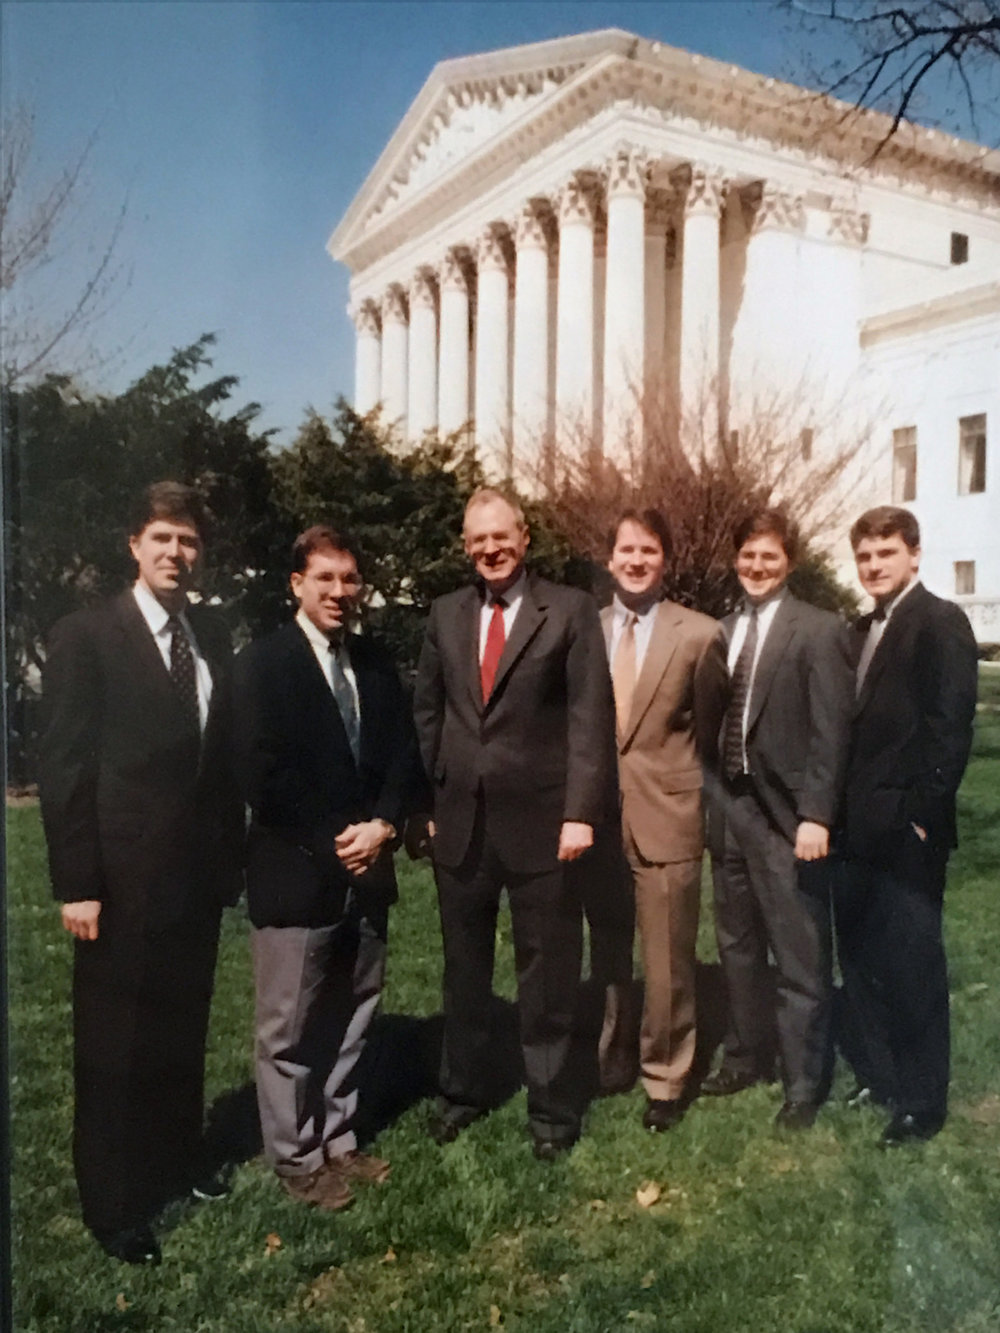 Kavanaugh, Gorsuch, and fellow clerks with Justice Anthony Kennedy in 1993 ( source )